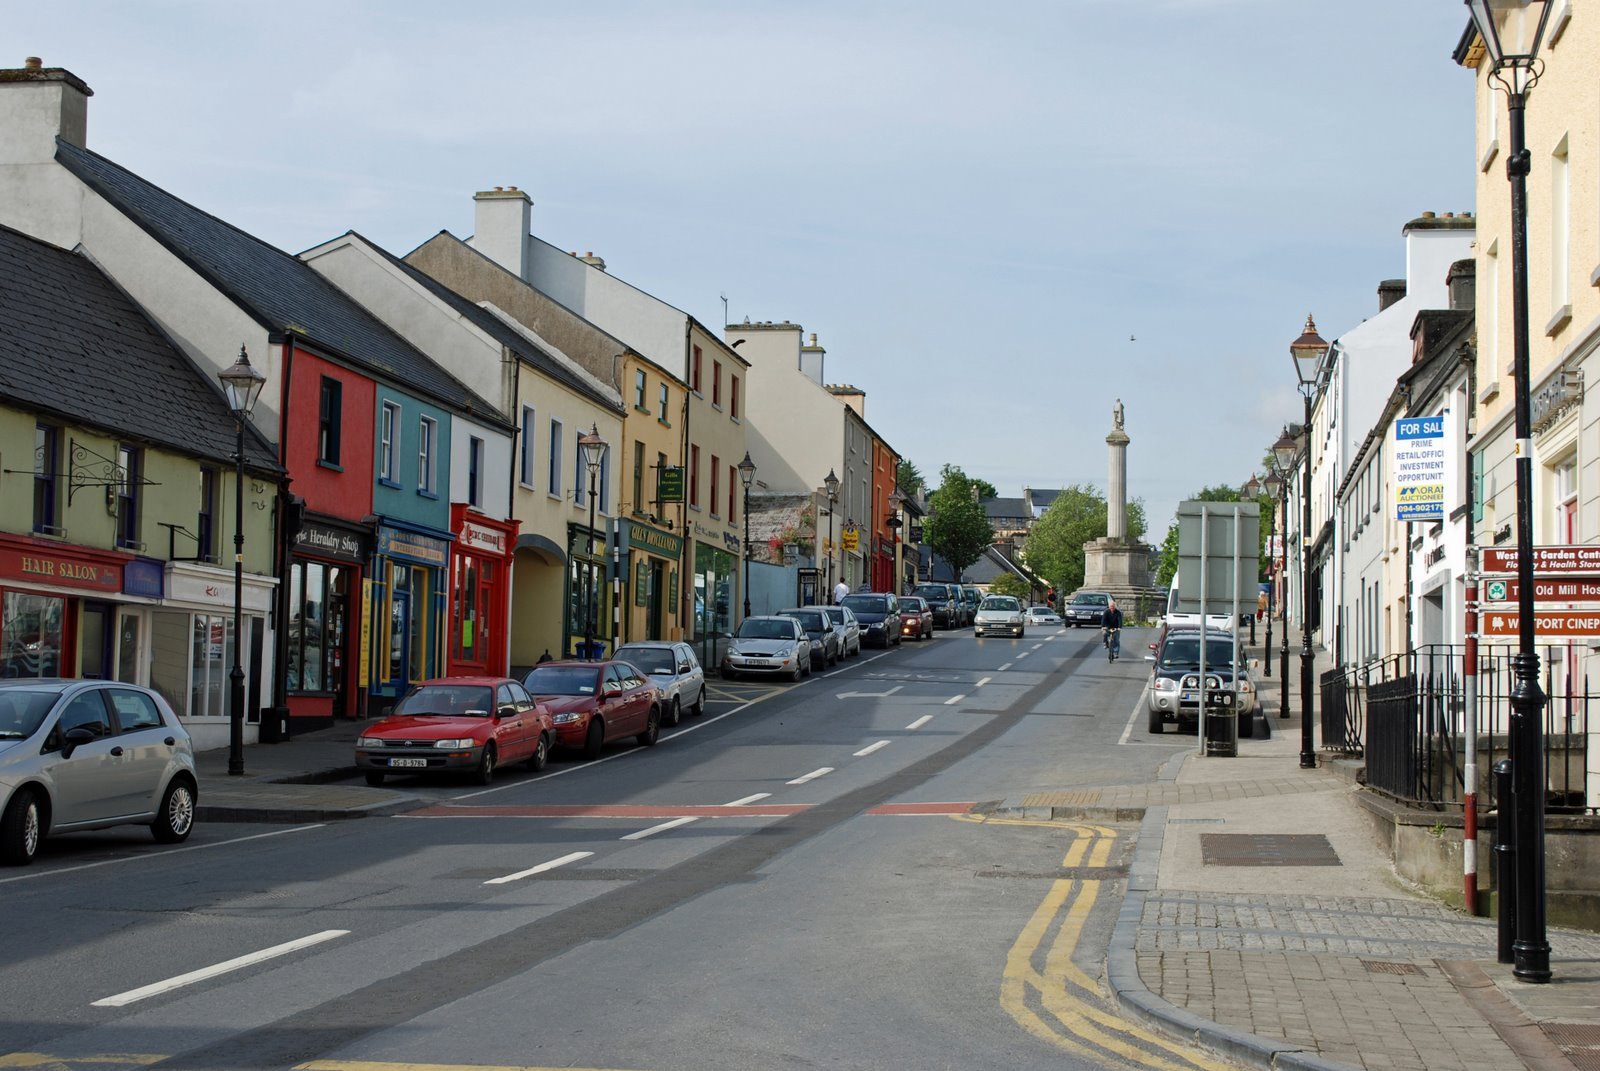 bridge street, westport, county mayo, ireland